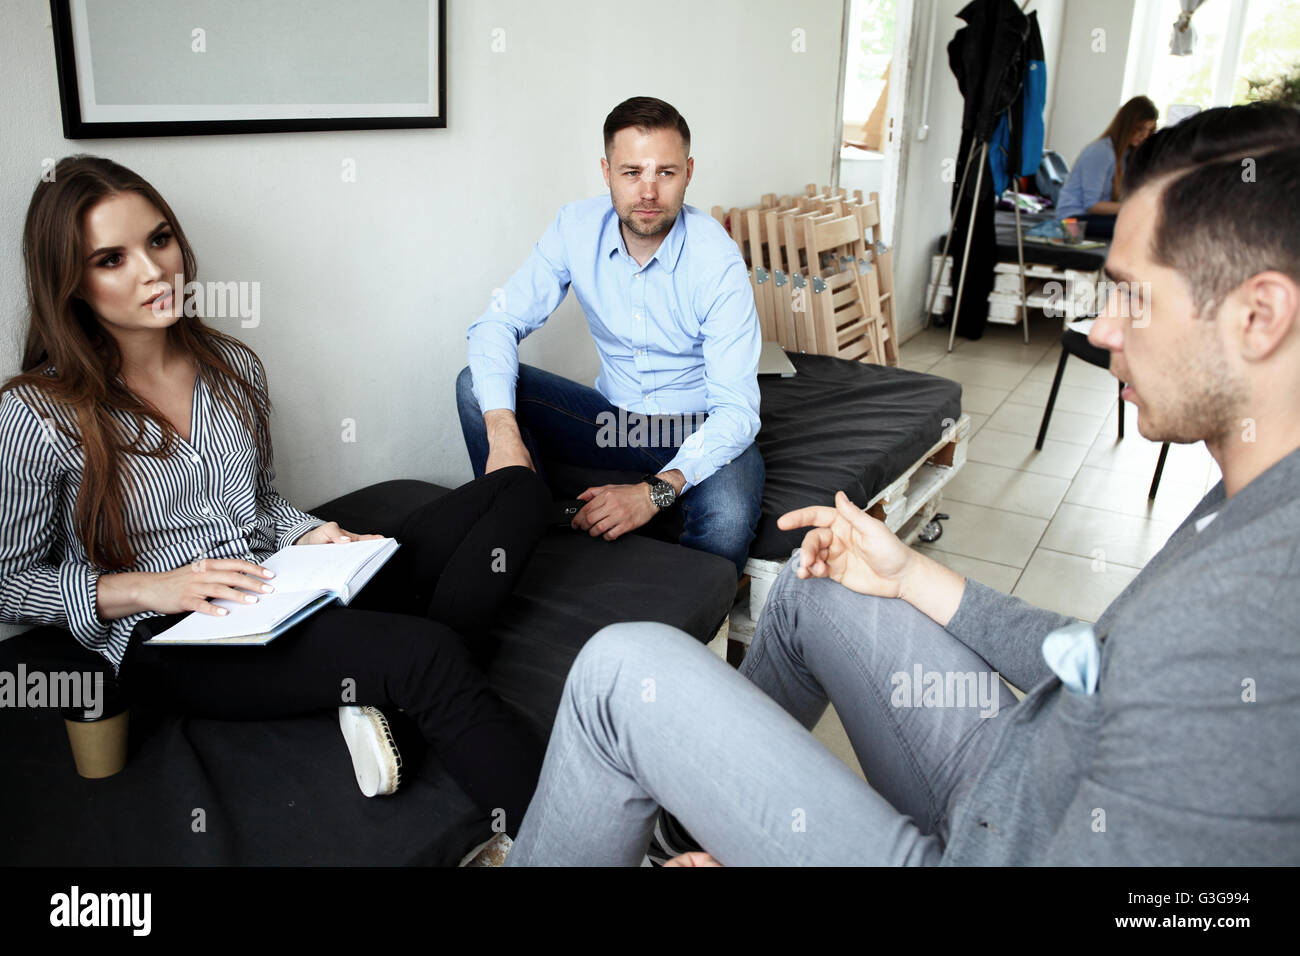 Creative business team working hard together in office - Stock Image